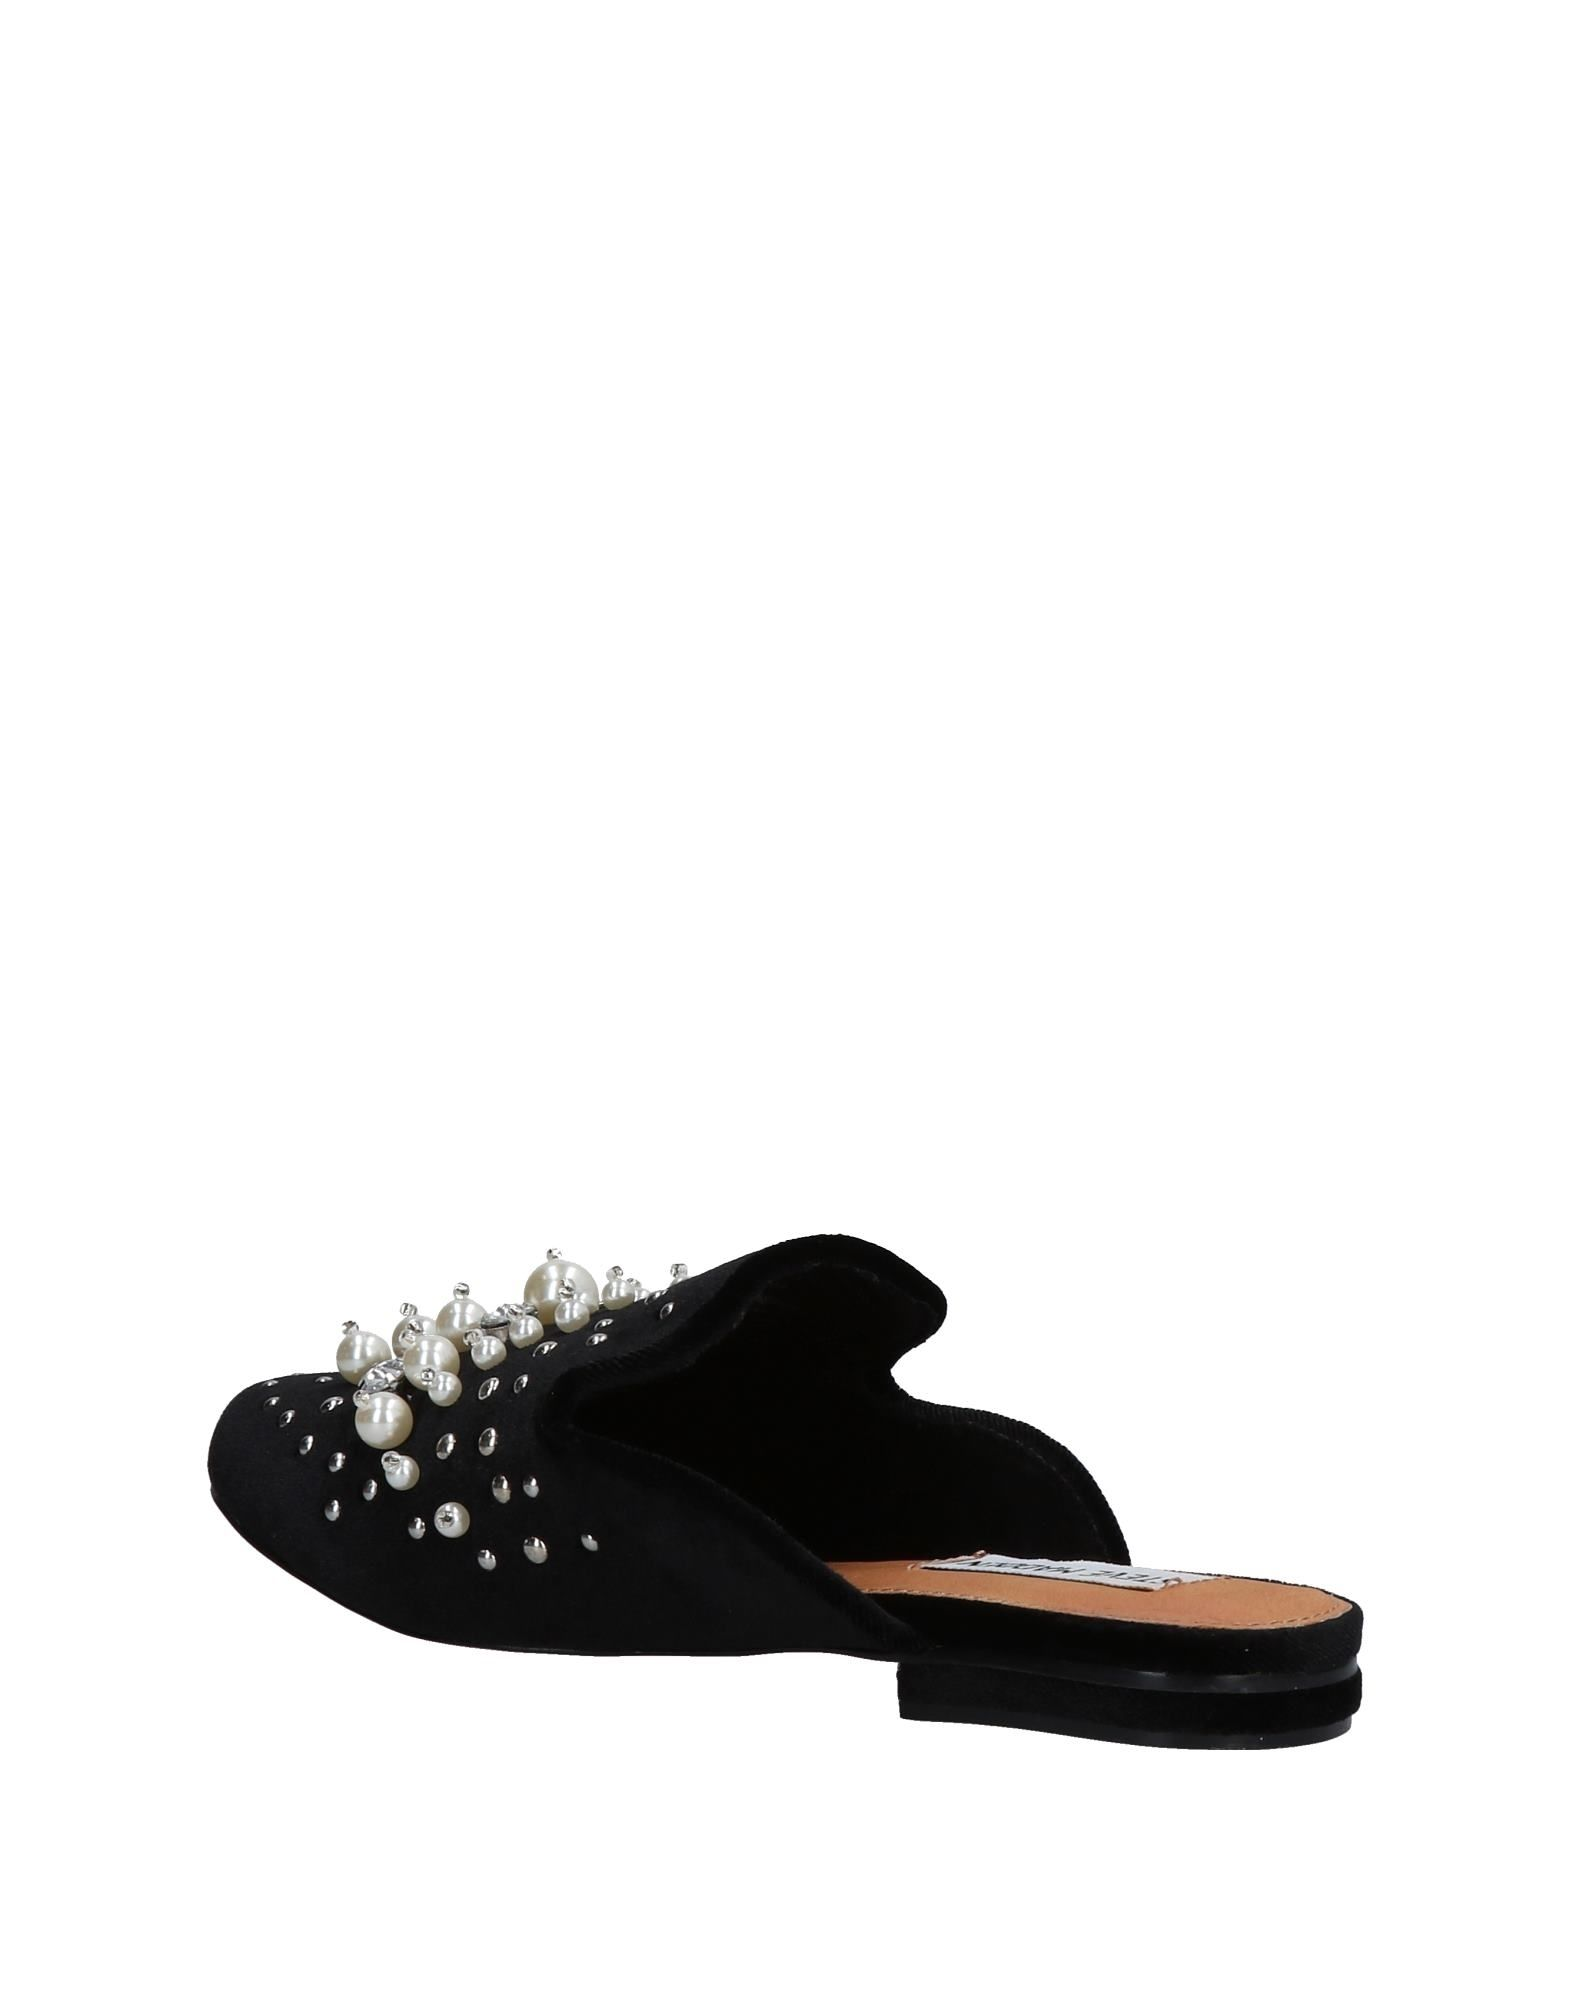 steve madden bout ouvert mules mules mules - femmes steve madden bout ouvert 11469827rr mules en ligne le royaume - uni - 7e666a